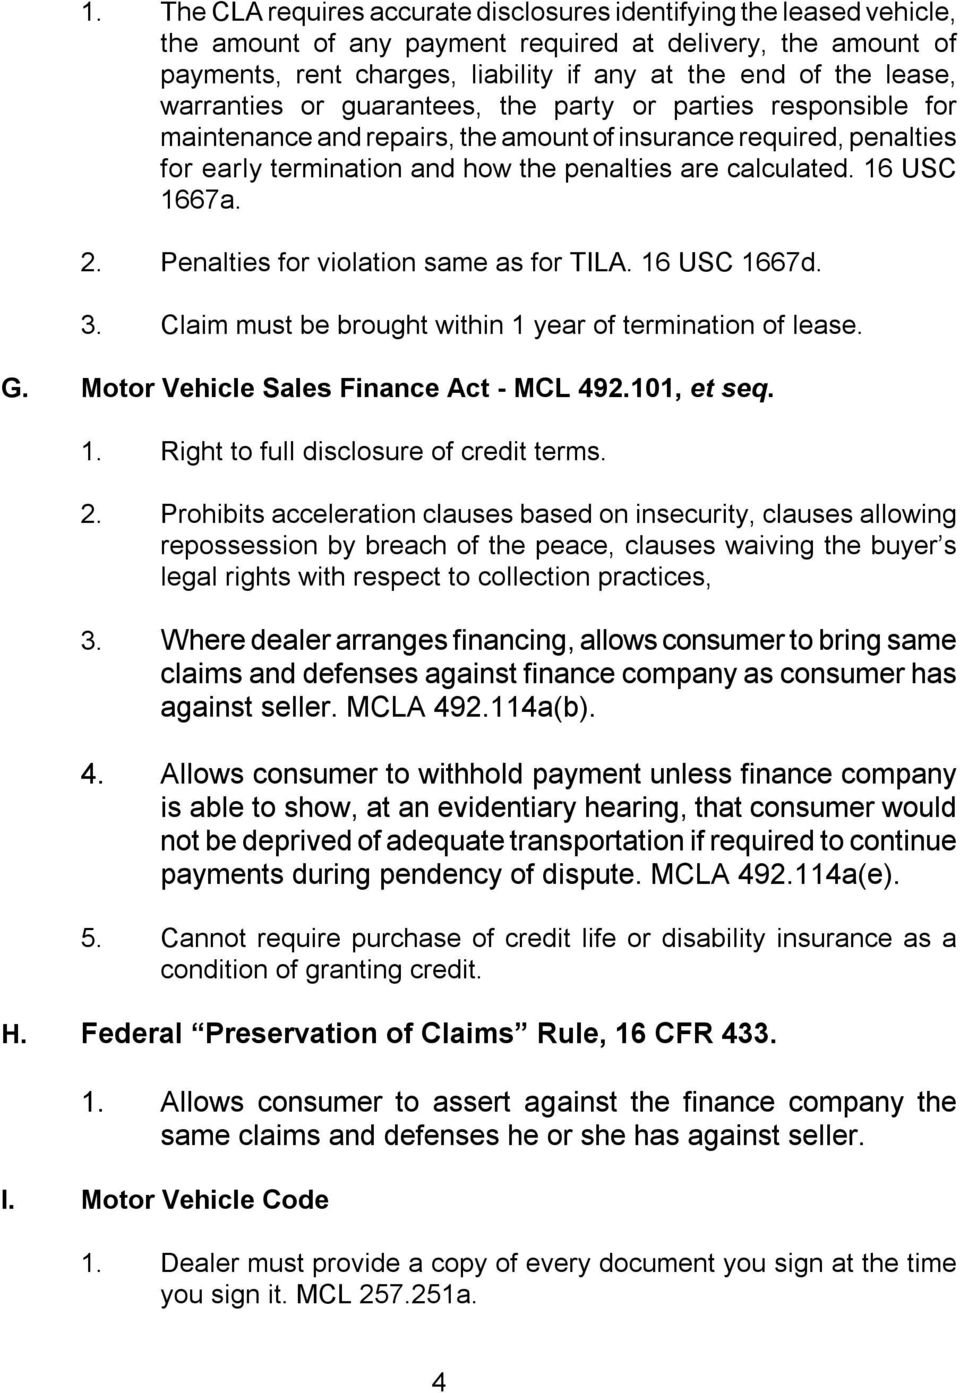 16 USC 1667a. 2. Penalties for violation same as for TILA. 16 USC 1667d. 3. Claim must be brought within 1 year of termination of lease. G. Motor Vehicle Sales Finance Act - MCL 492.101, et seq. 1. Right to full disclosure of credit terms.